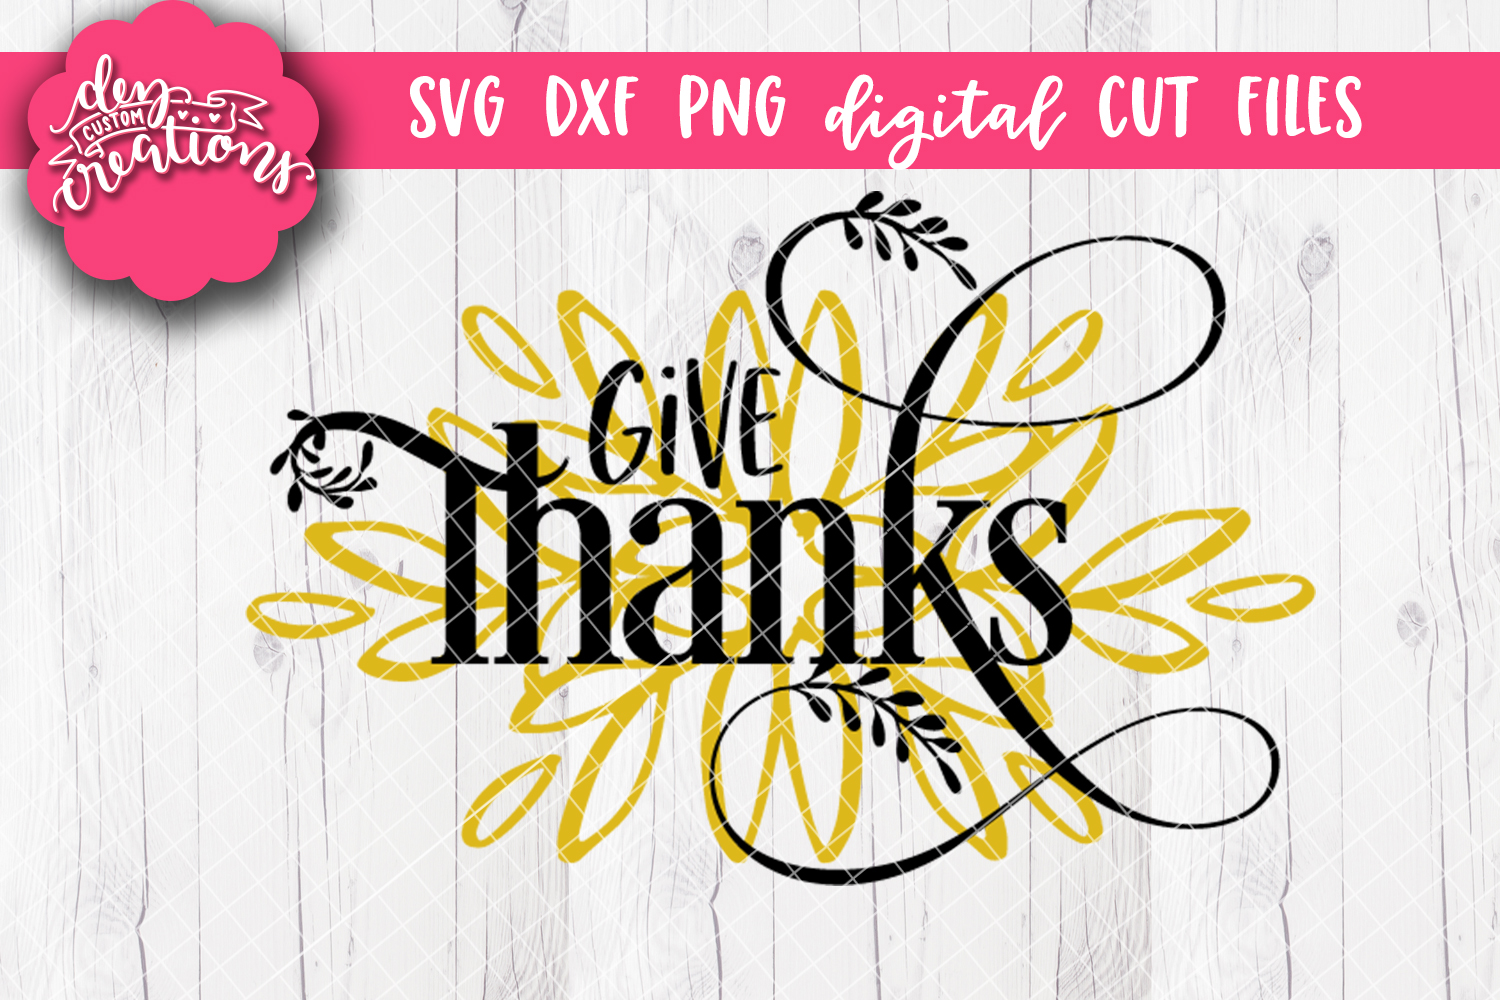 Give Thanks - SVG DXF PNG Digital Cut File example image 1